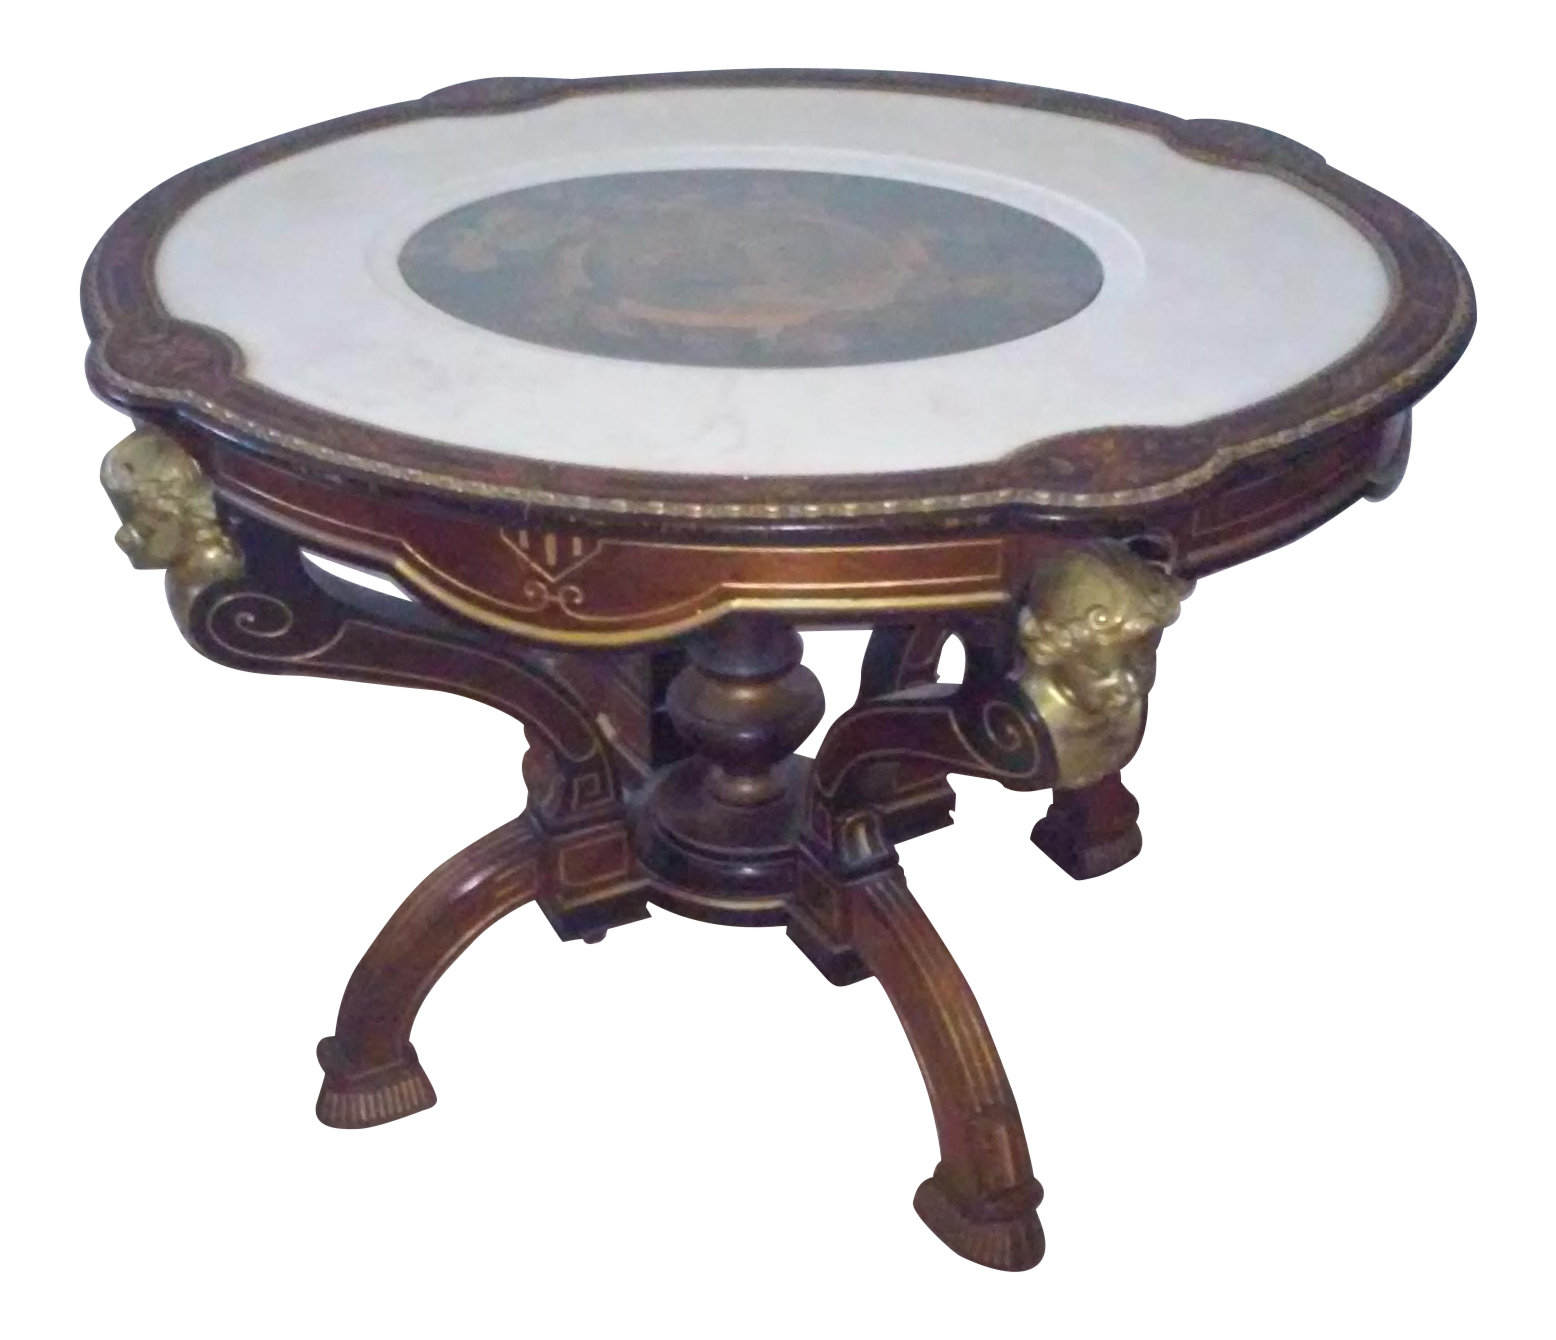 Antique Inlaid Marble Table : Vintage table with inlaid marble chairish